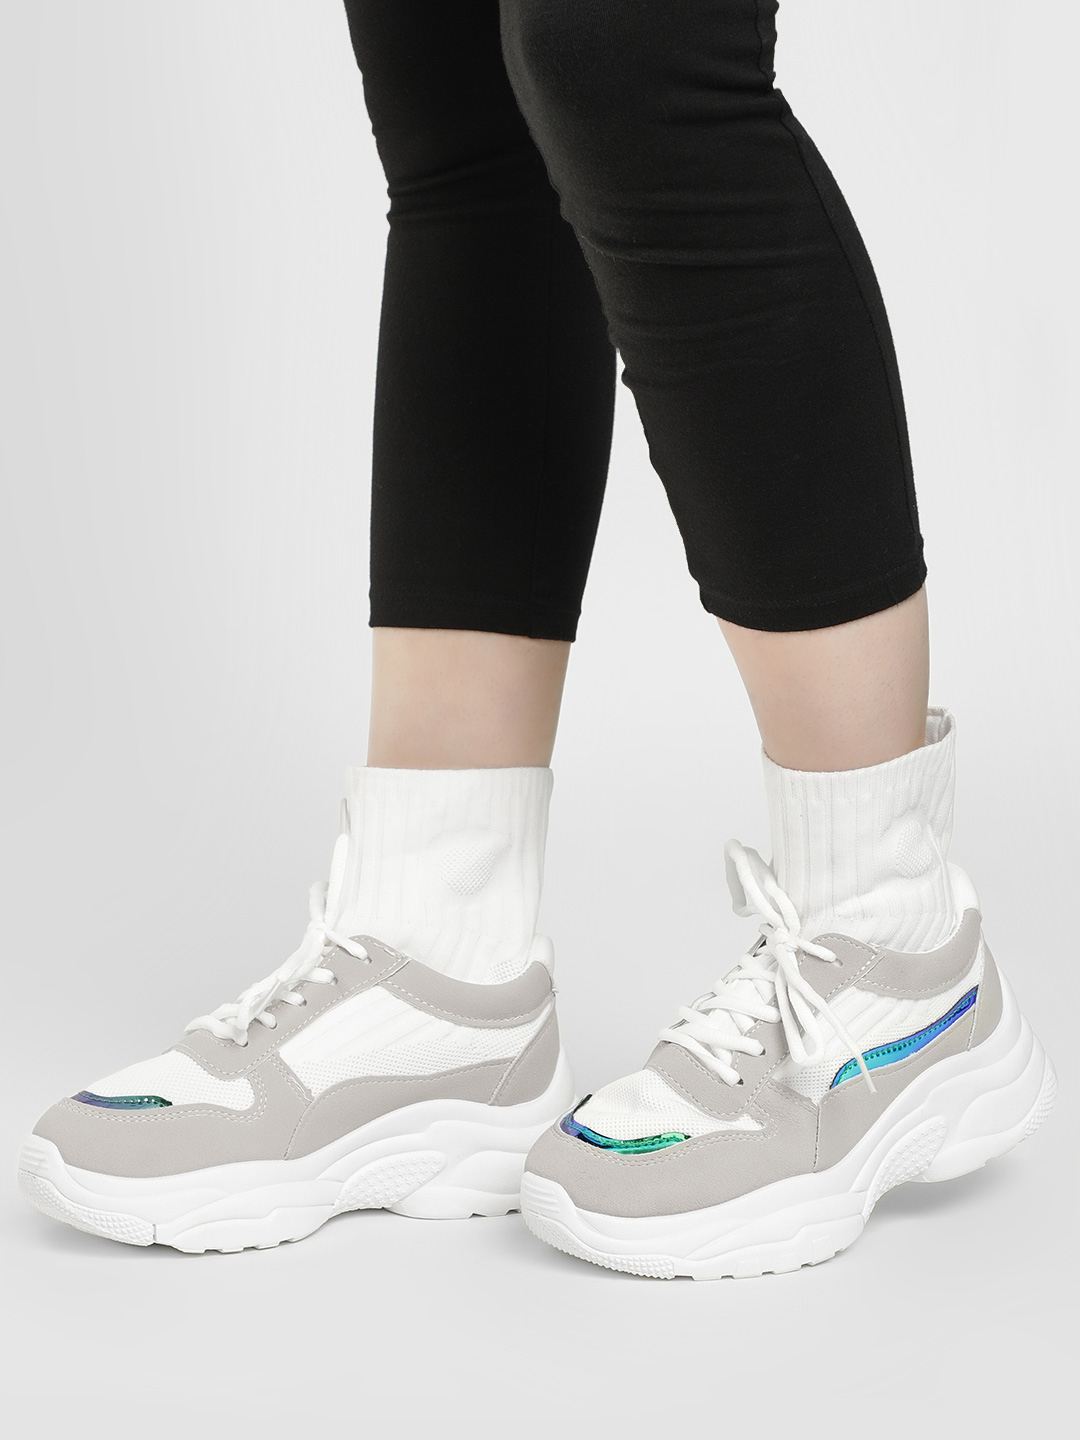 Sole Story white/grey Sockliner Chunky Sole Trainers 1